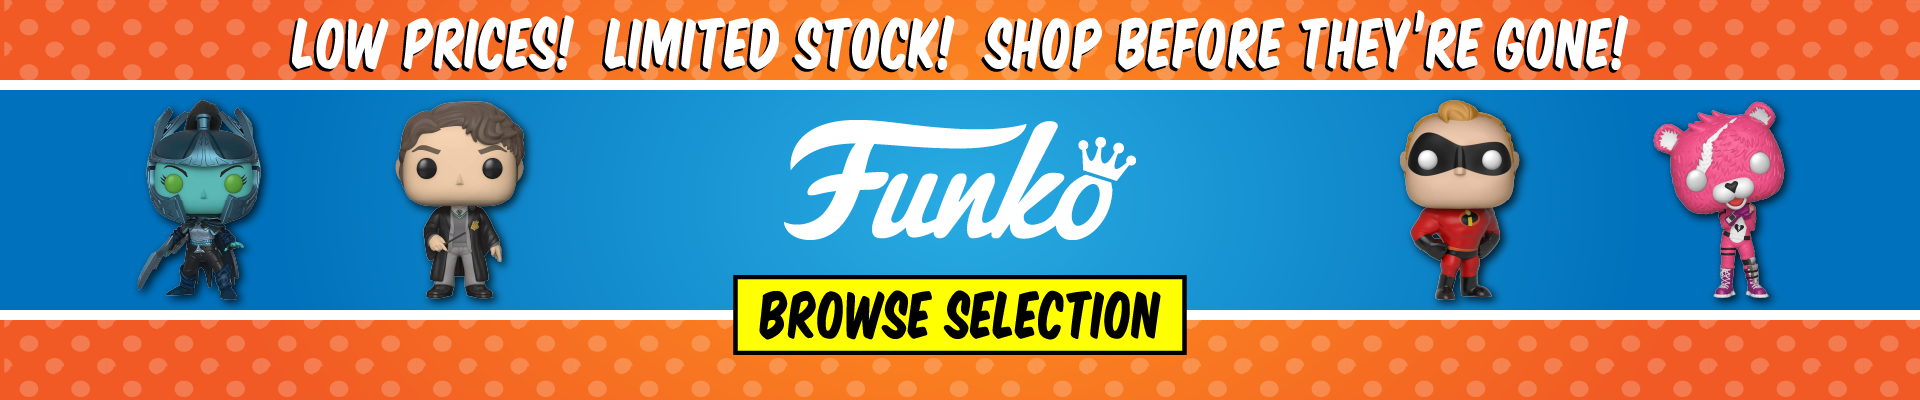 Funko - Shop Before They're Gone